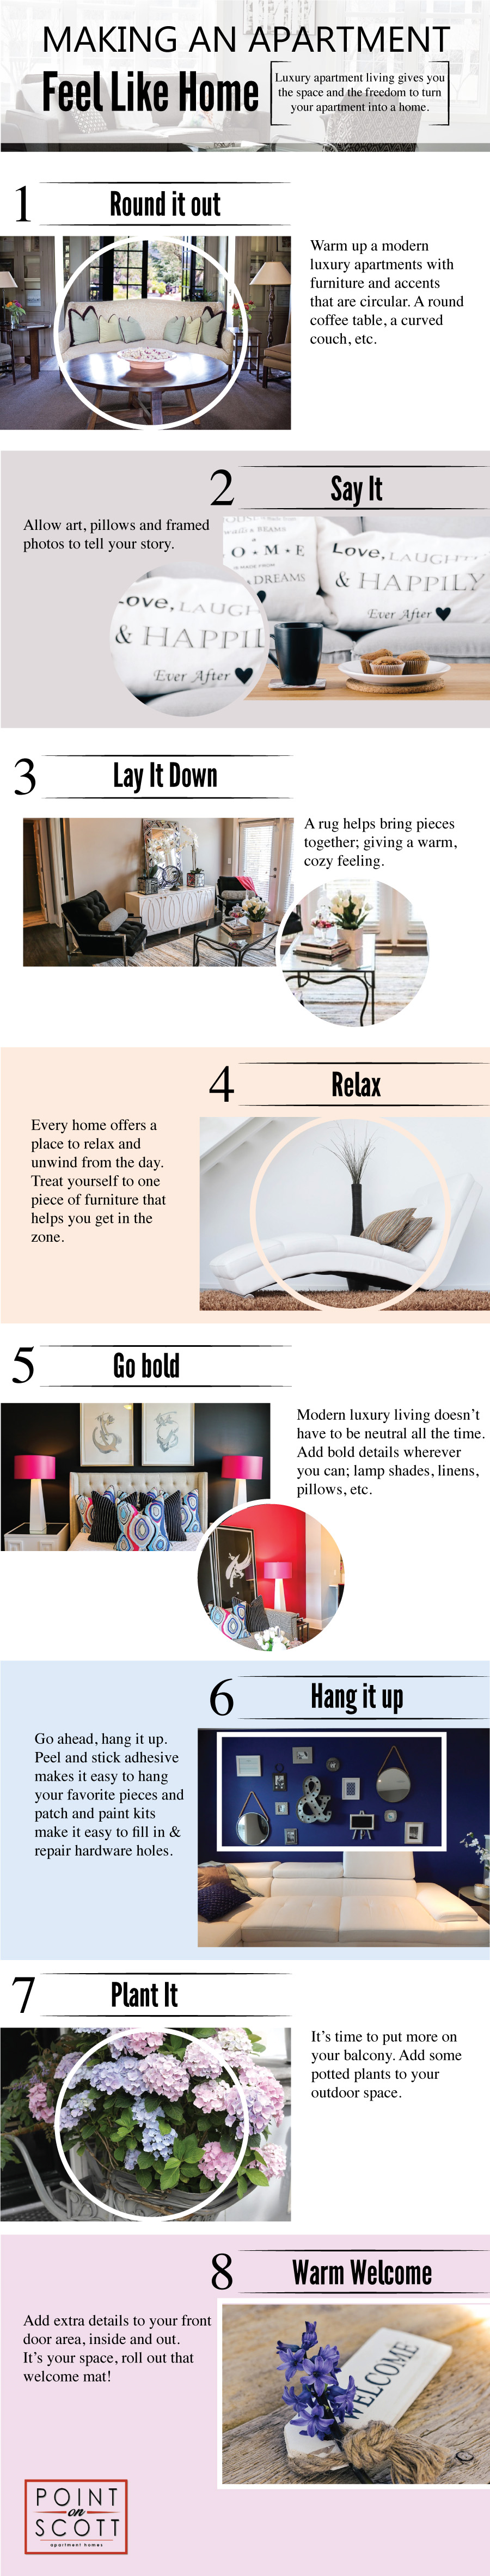 8 Tips for Make an Apartment Feel Like Home